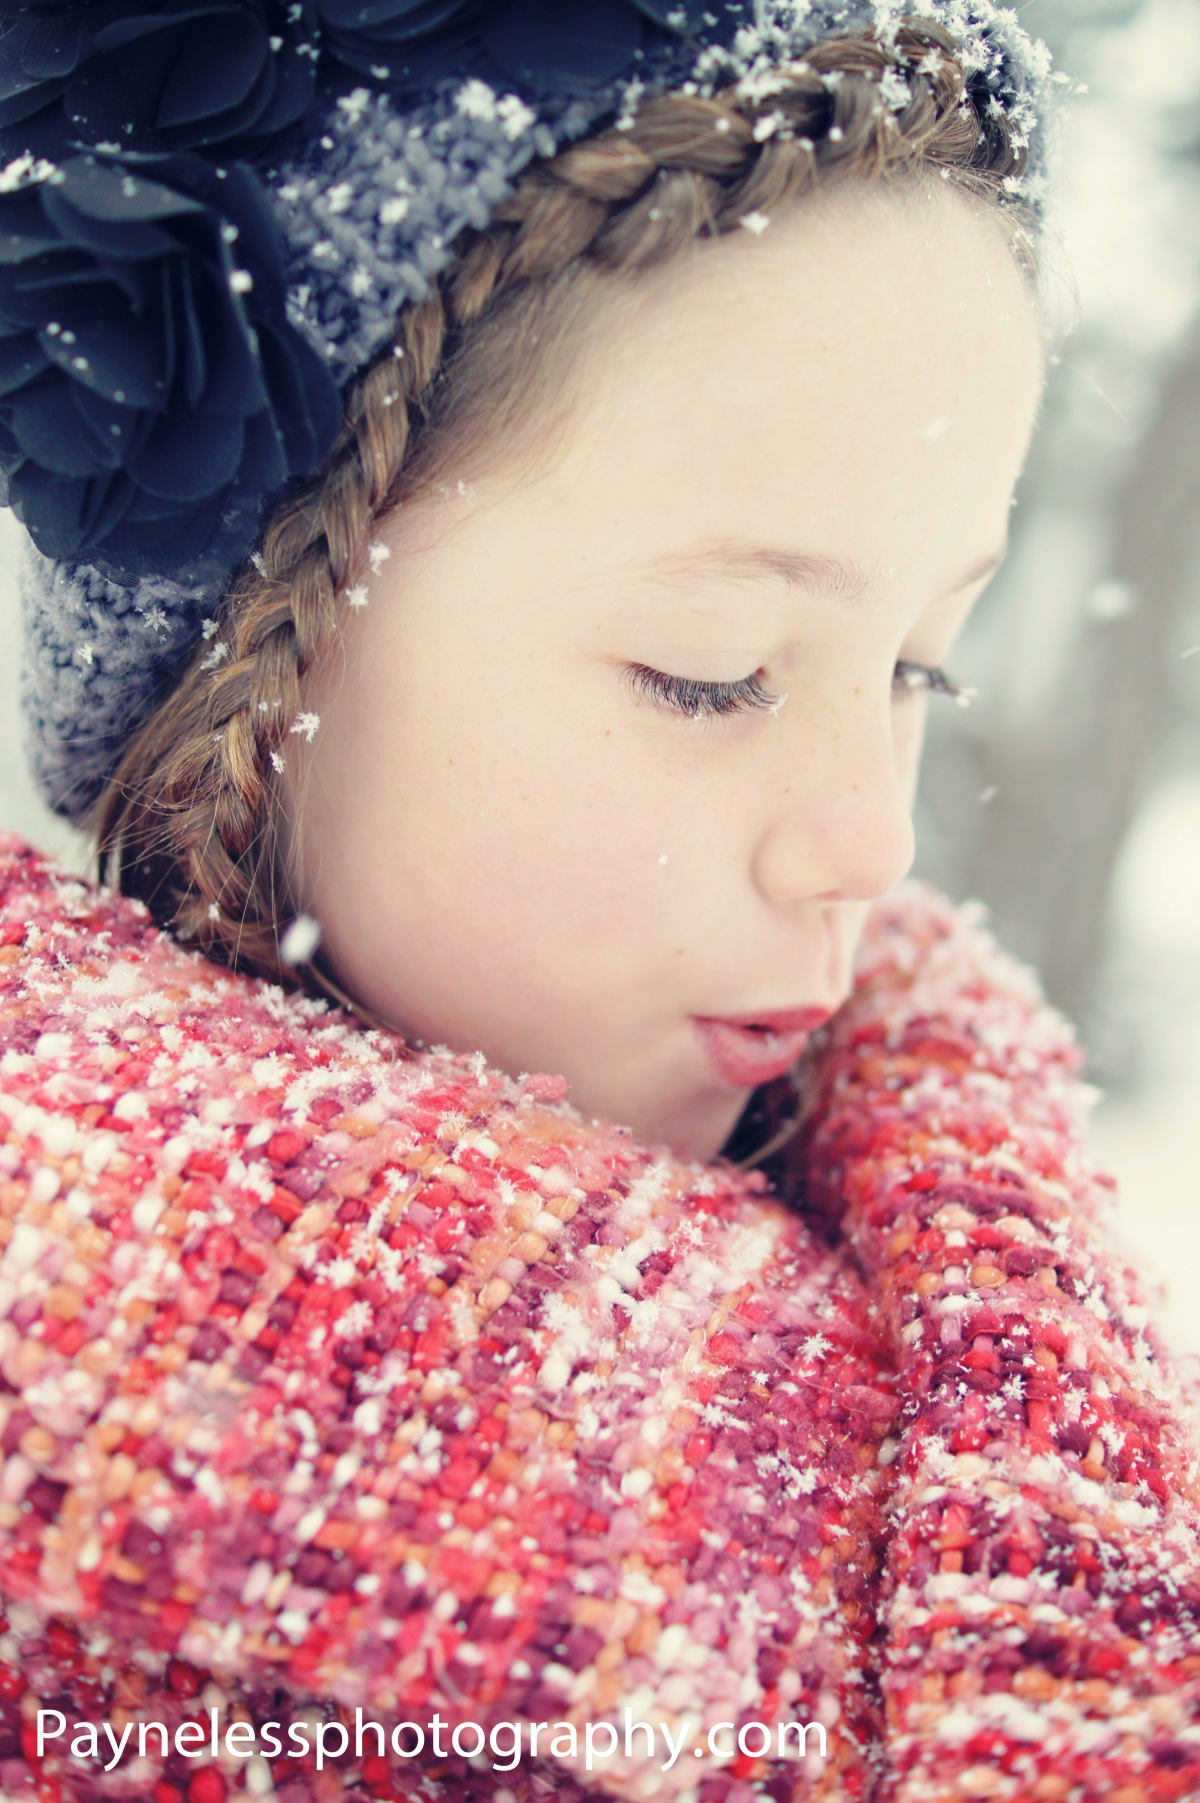 Dreamy Photos in the Snow